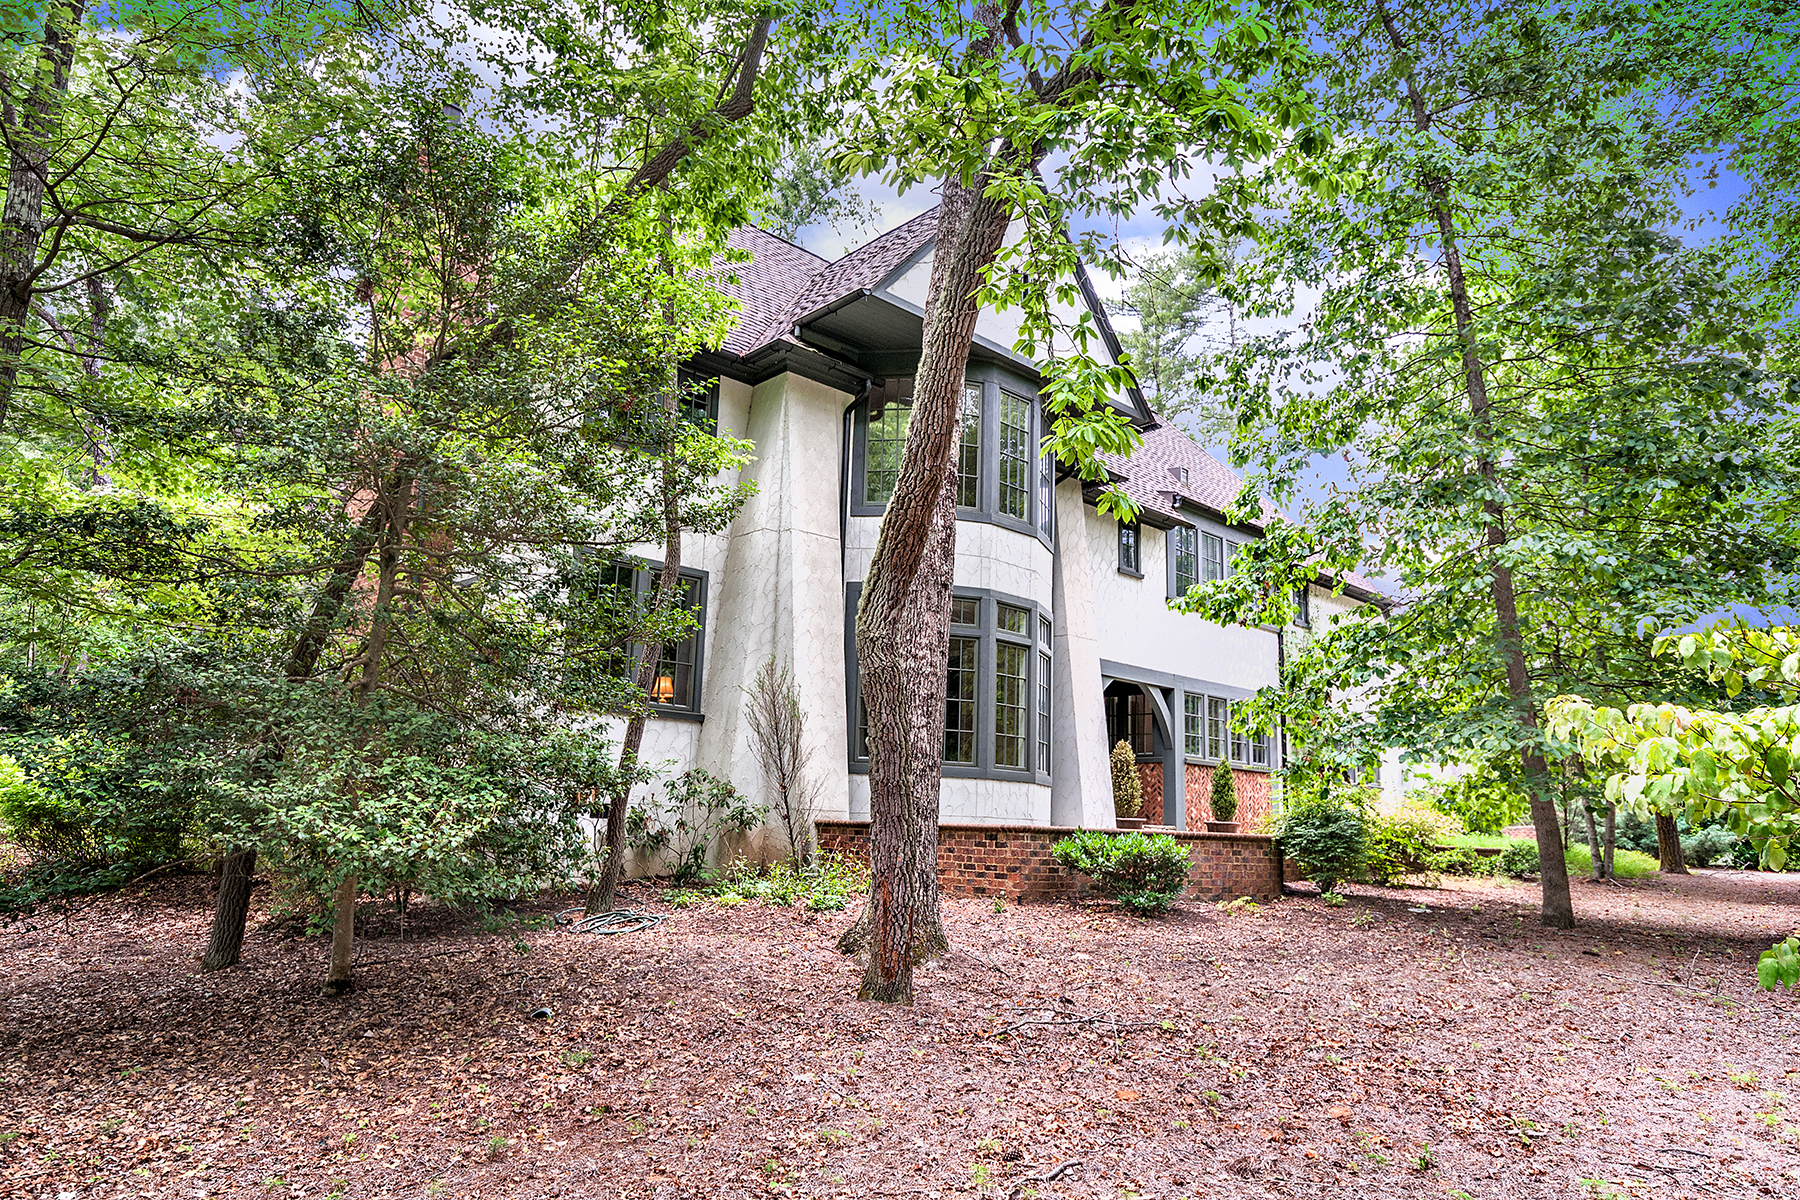 Single Family Home for Sale at RAMBLE BILTMORE FOREST 18 Chauncey Cir, Asheville, North Carolina 28803 United States